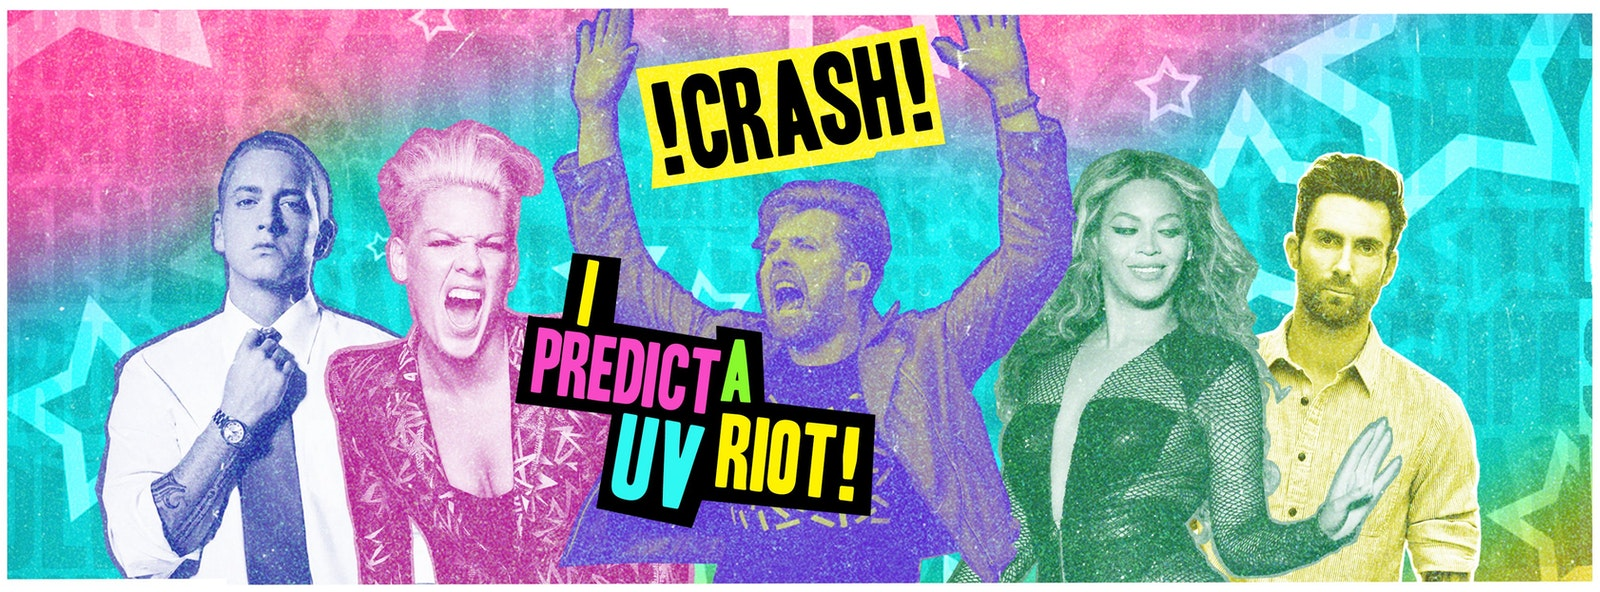 CRASH – I Predict A UV Riot! Free Glow Sticks & Face Paints!